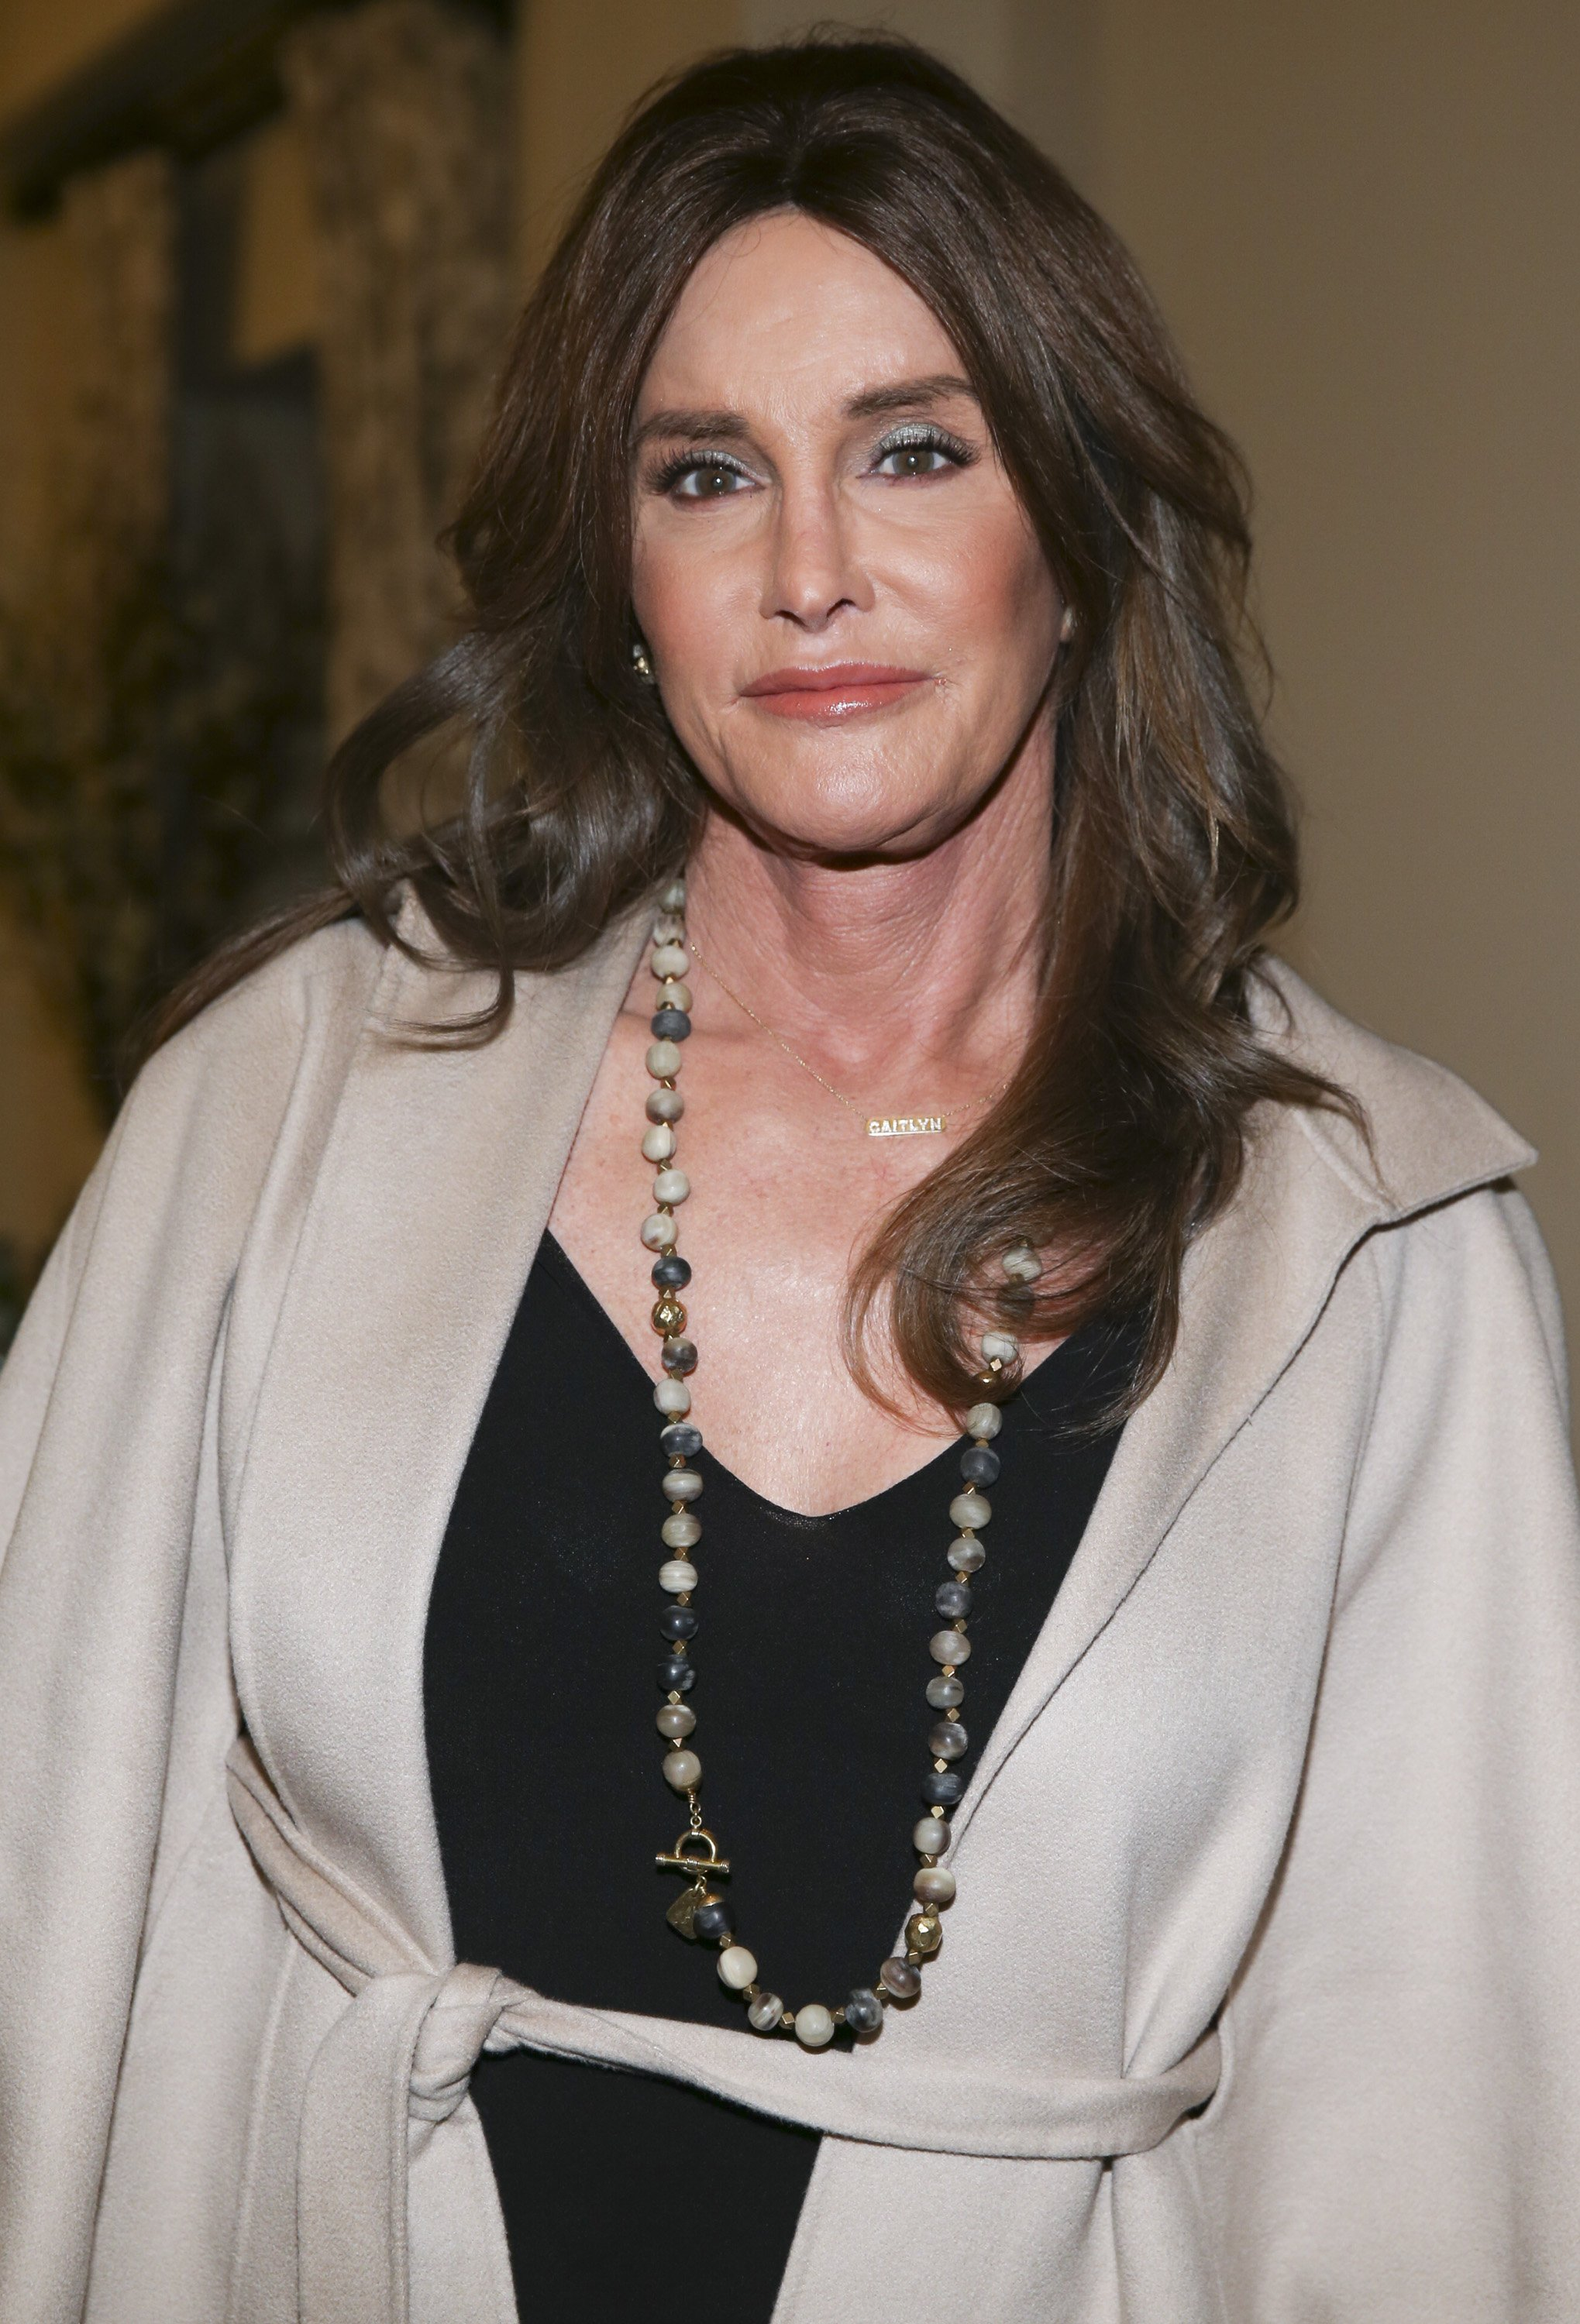 Caitlyn Jenner attends at the 2016 MAKERS Conference, Day 1 at the Terrenea Resort on February 1, 2016, in Rancho Palos Verdes, California. | Source: Getty Images.